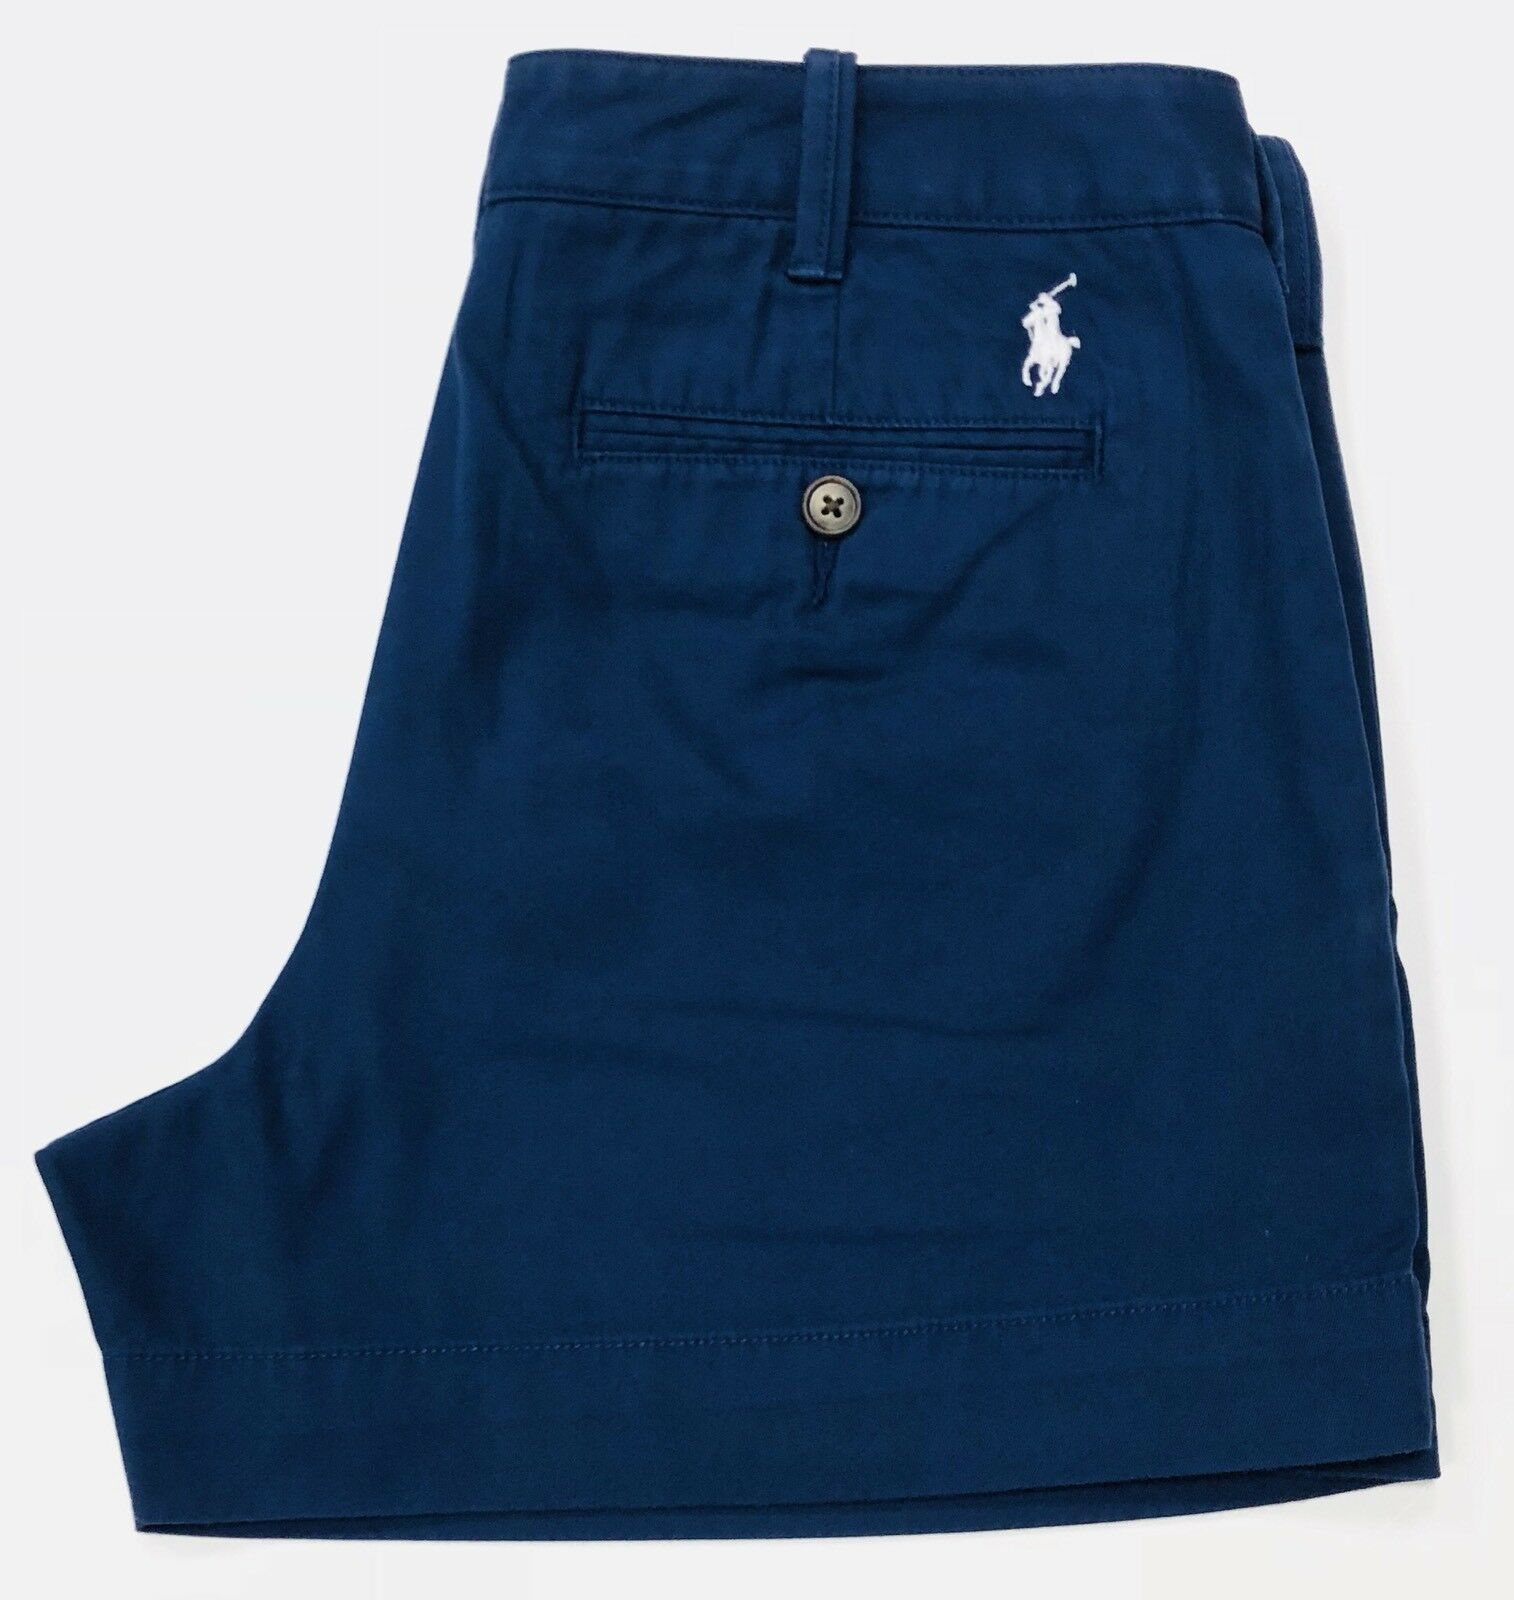 Ralph Lauren Women's Shorts in bluee